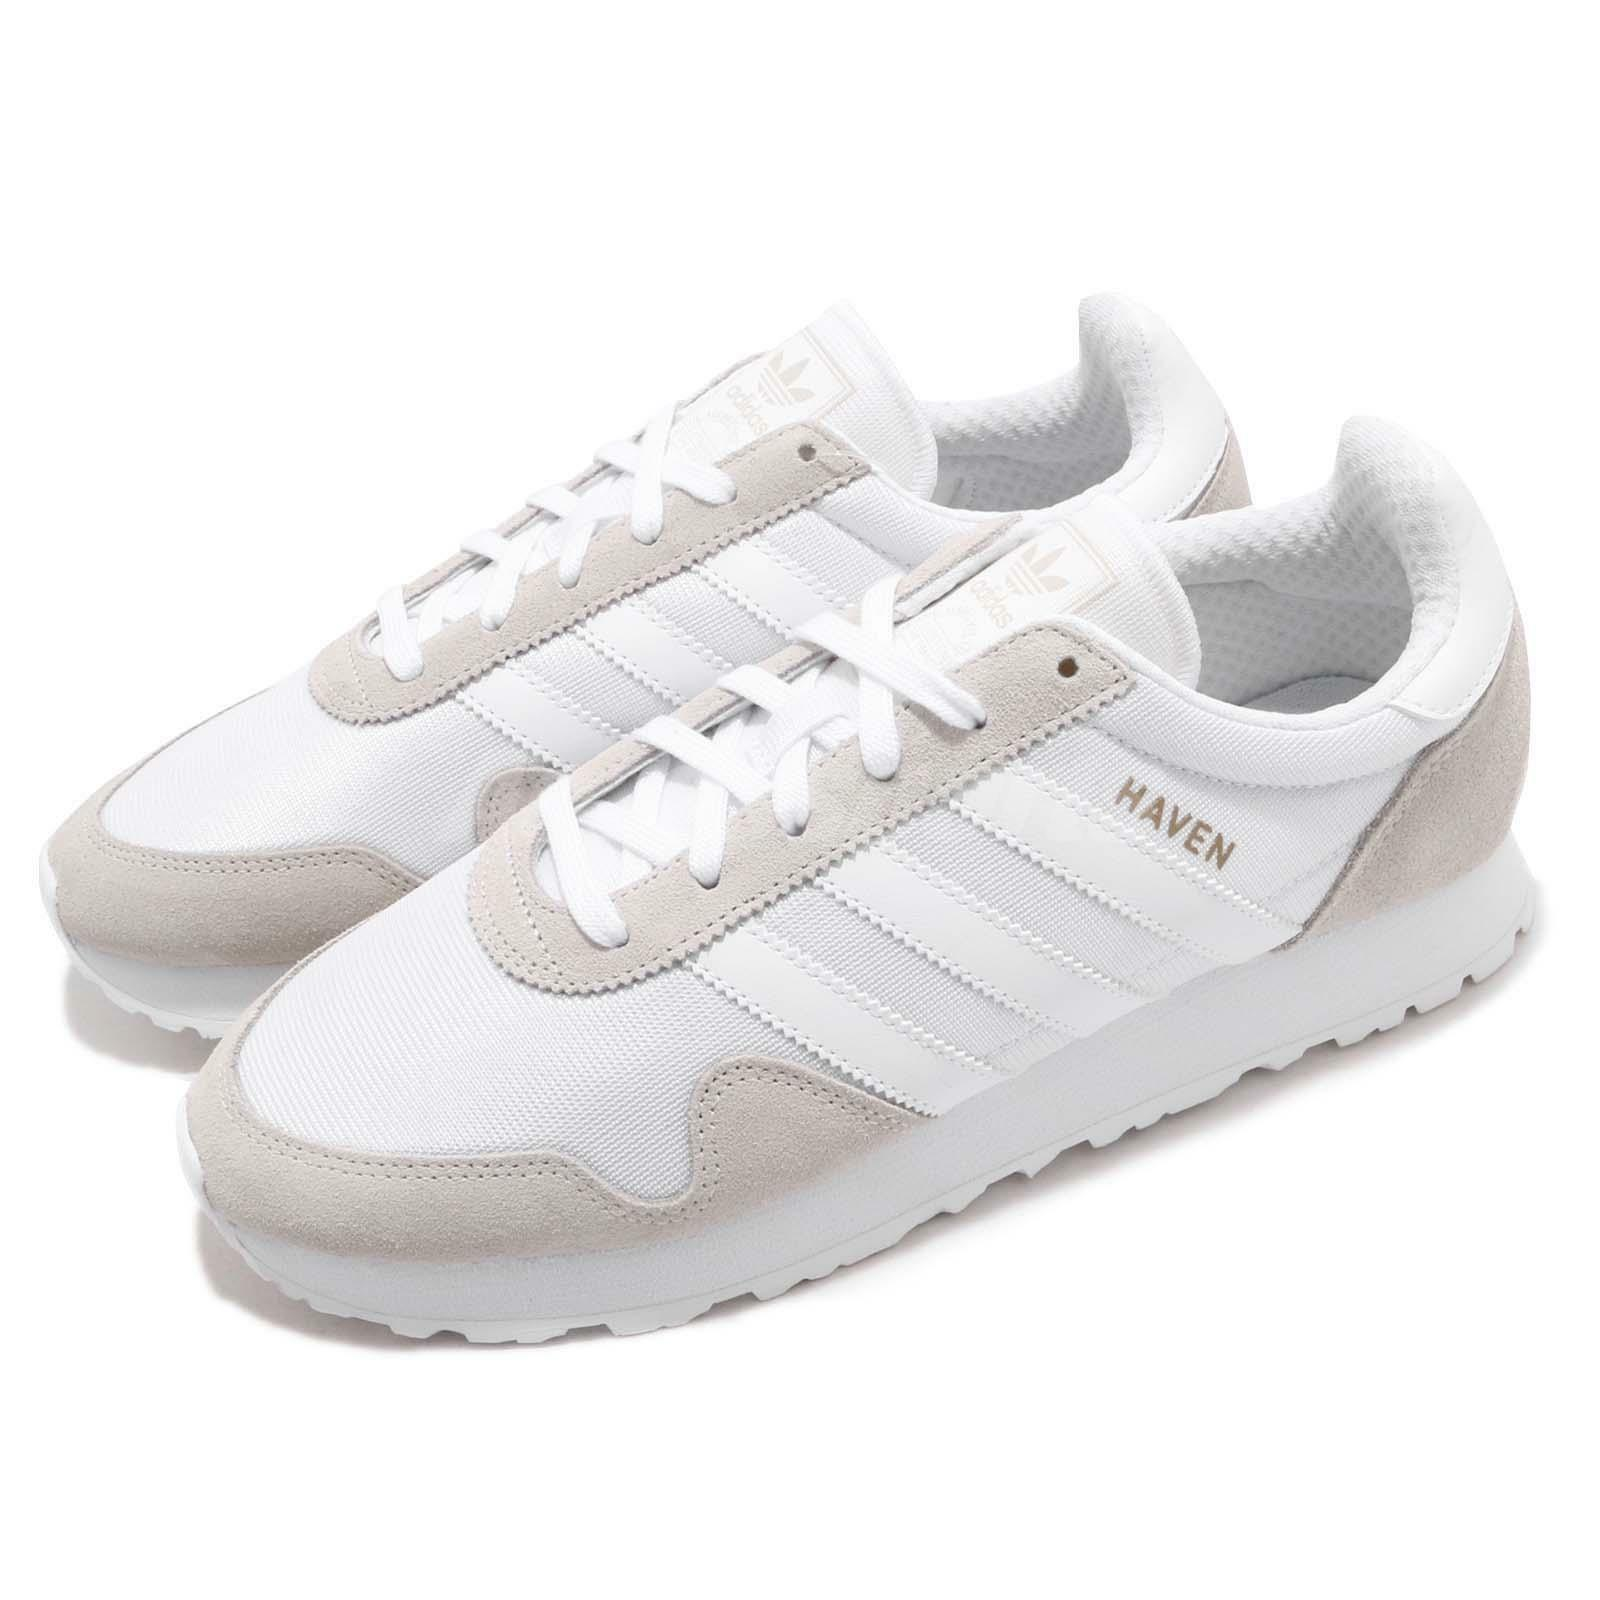 Adidas Originals Haven Vintage White Grey Men Running shoes Sneakers BY9718